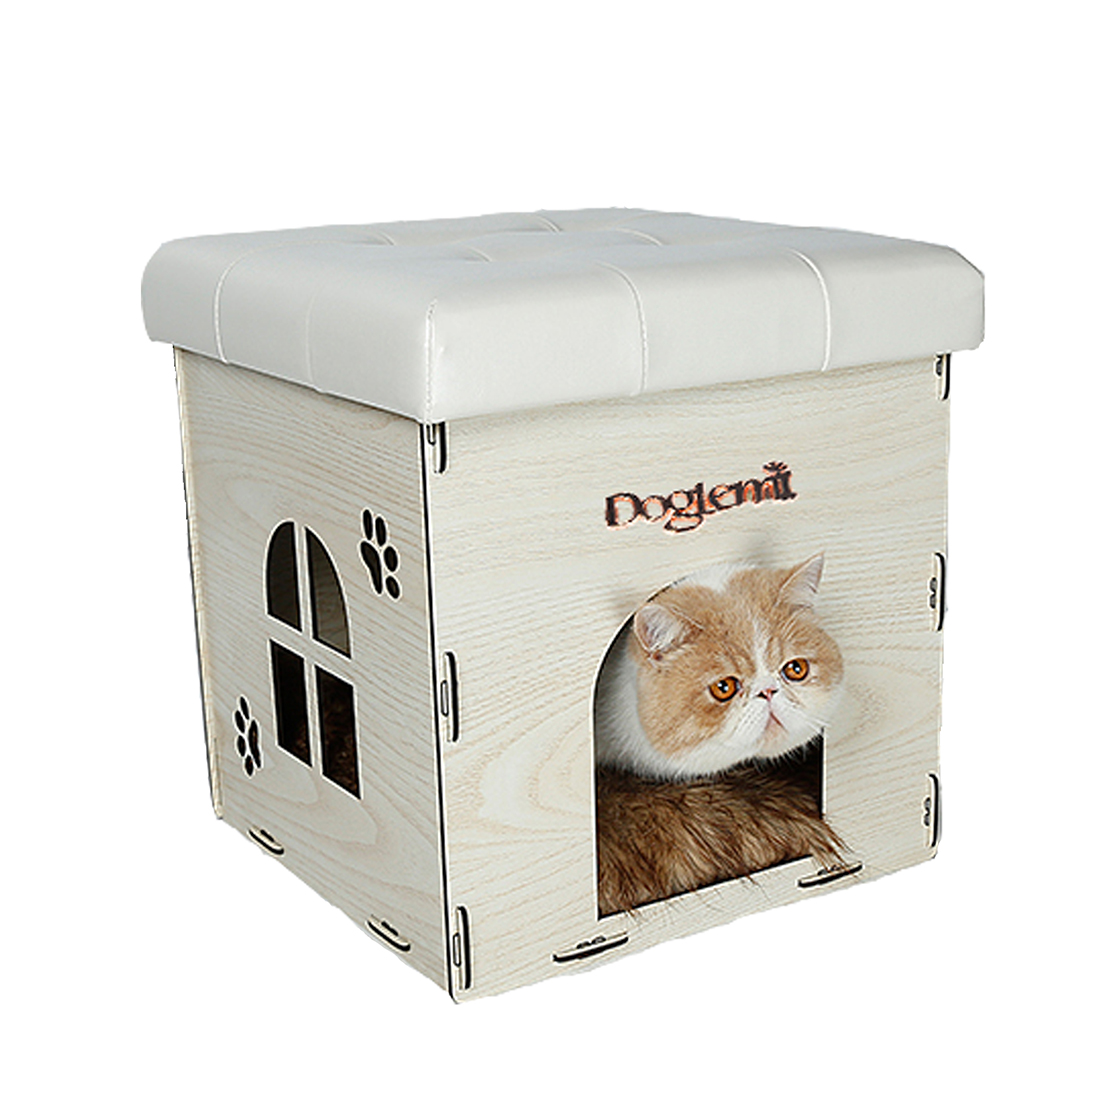 Attractive Soft Cat House Ottoman Multi Function Home Chair Detachable Puppy Dog Pet  Bed Furniture White DOGLEMI Authorized   Walmart.com